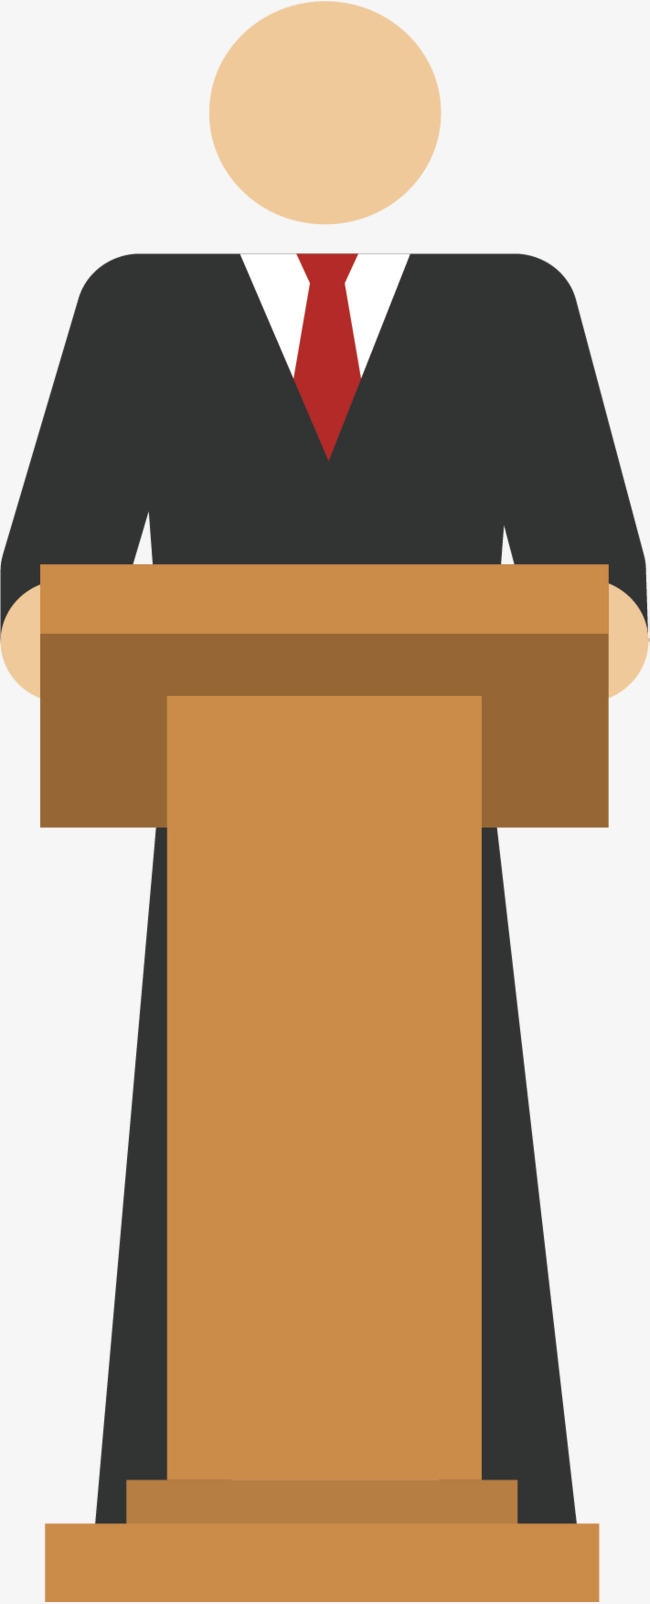 650x1604 Speak On The Podium, Vector Material, Speech, Make A Report Png